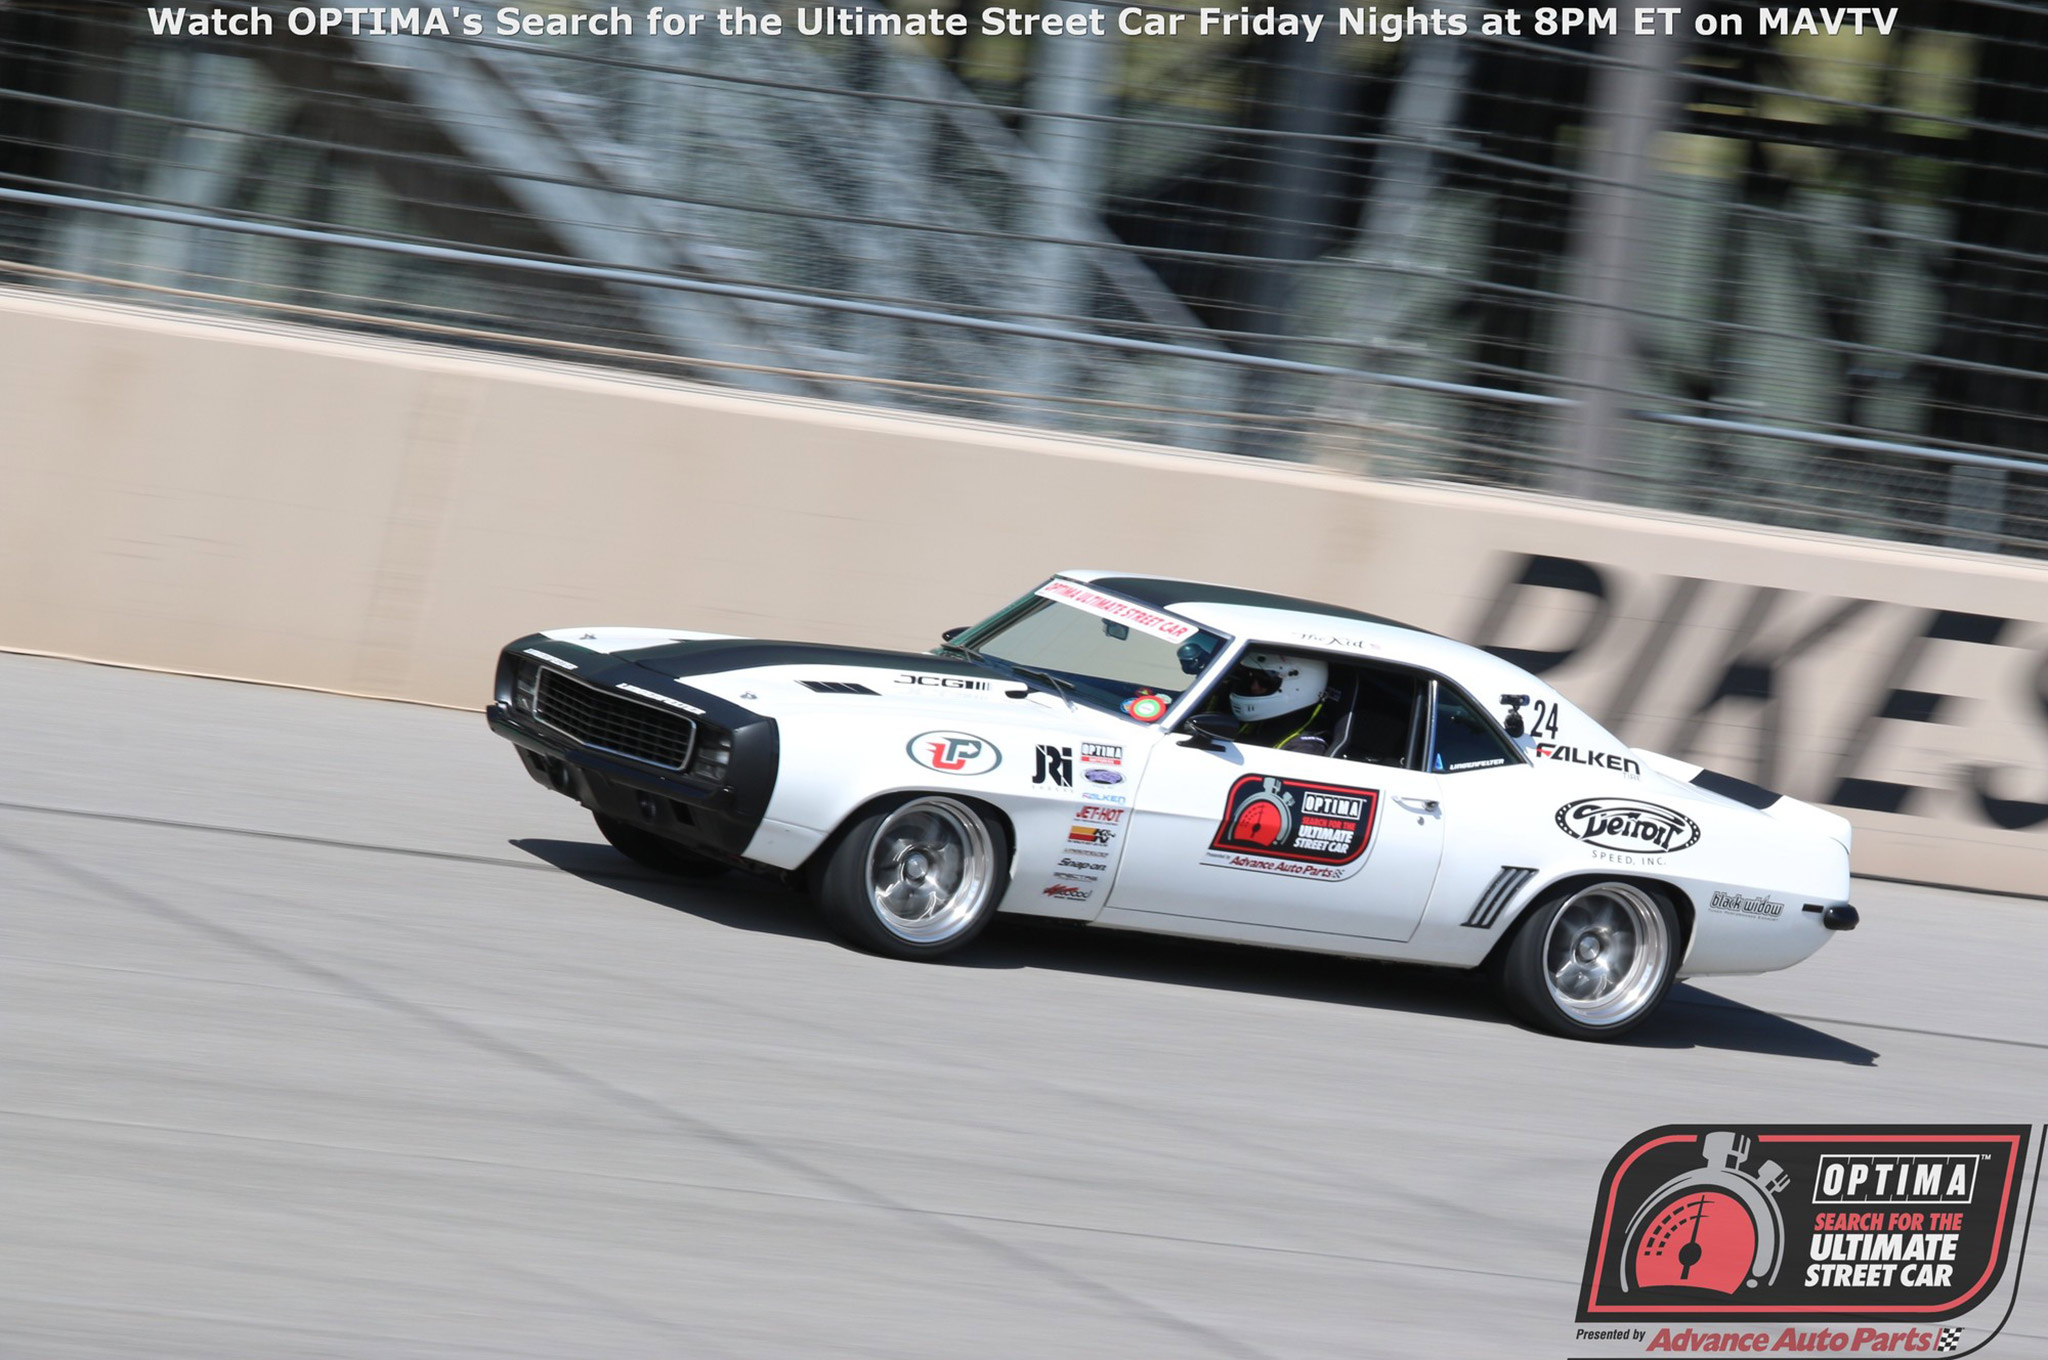 Chevrolets absolutely dominated the GTV class, taking the top nine positions, led by Jake Rozelle's 1969 Camaro. The win was Rozelle's second of the season and makes him the only GTV competitor in the top 10, who has not competed in any double-points events.